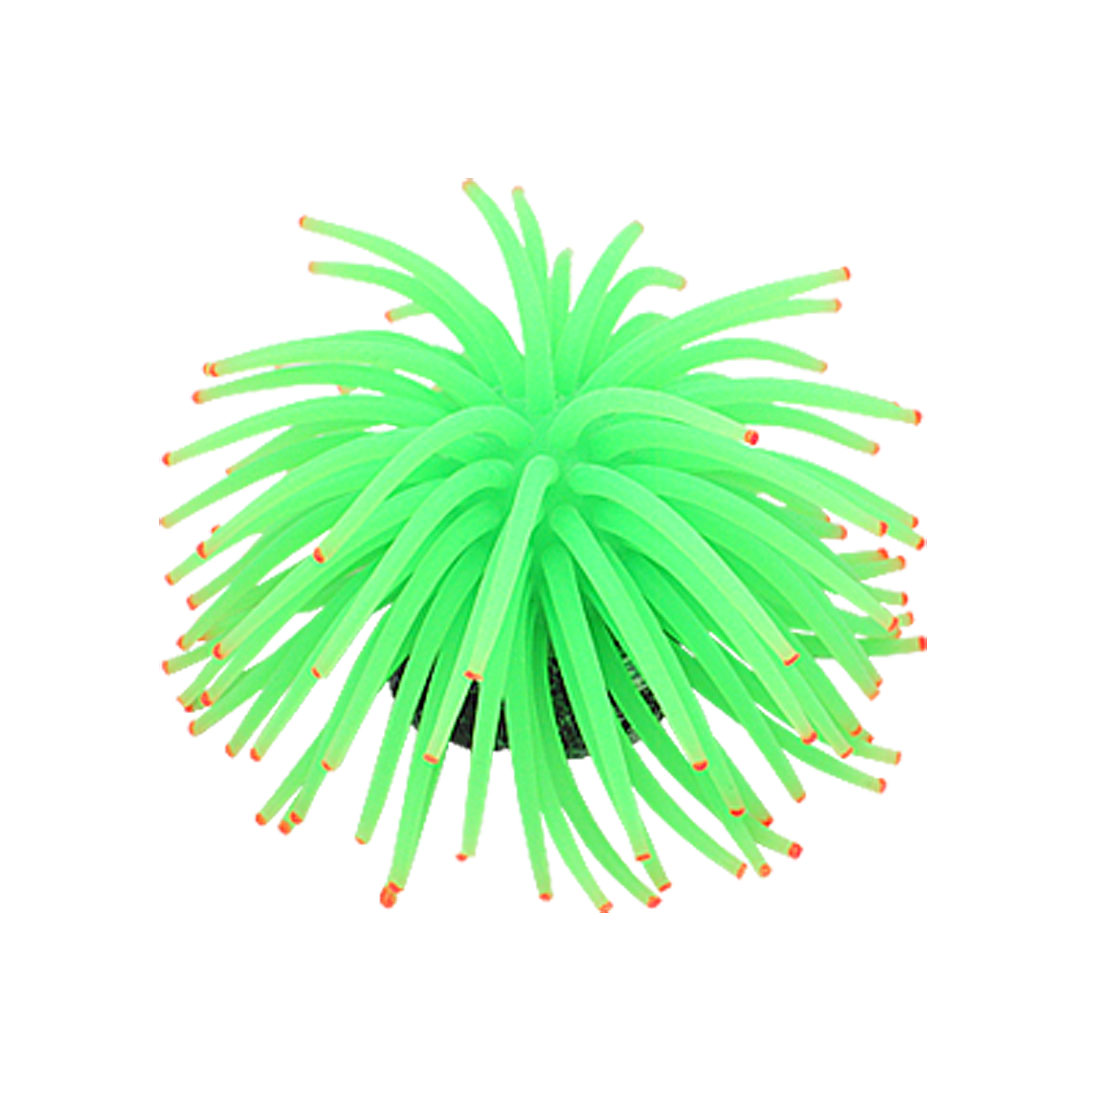 Green Silicone Sea Anemone Aquarium Fish Tank Ornament w Anchor Base